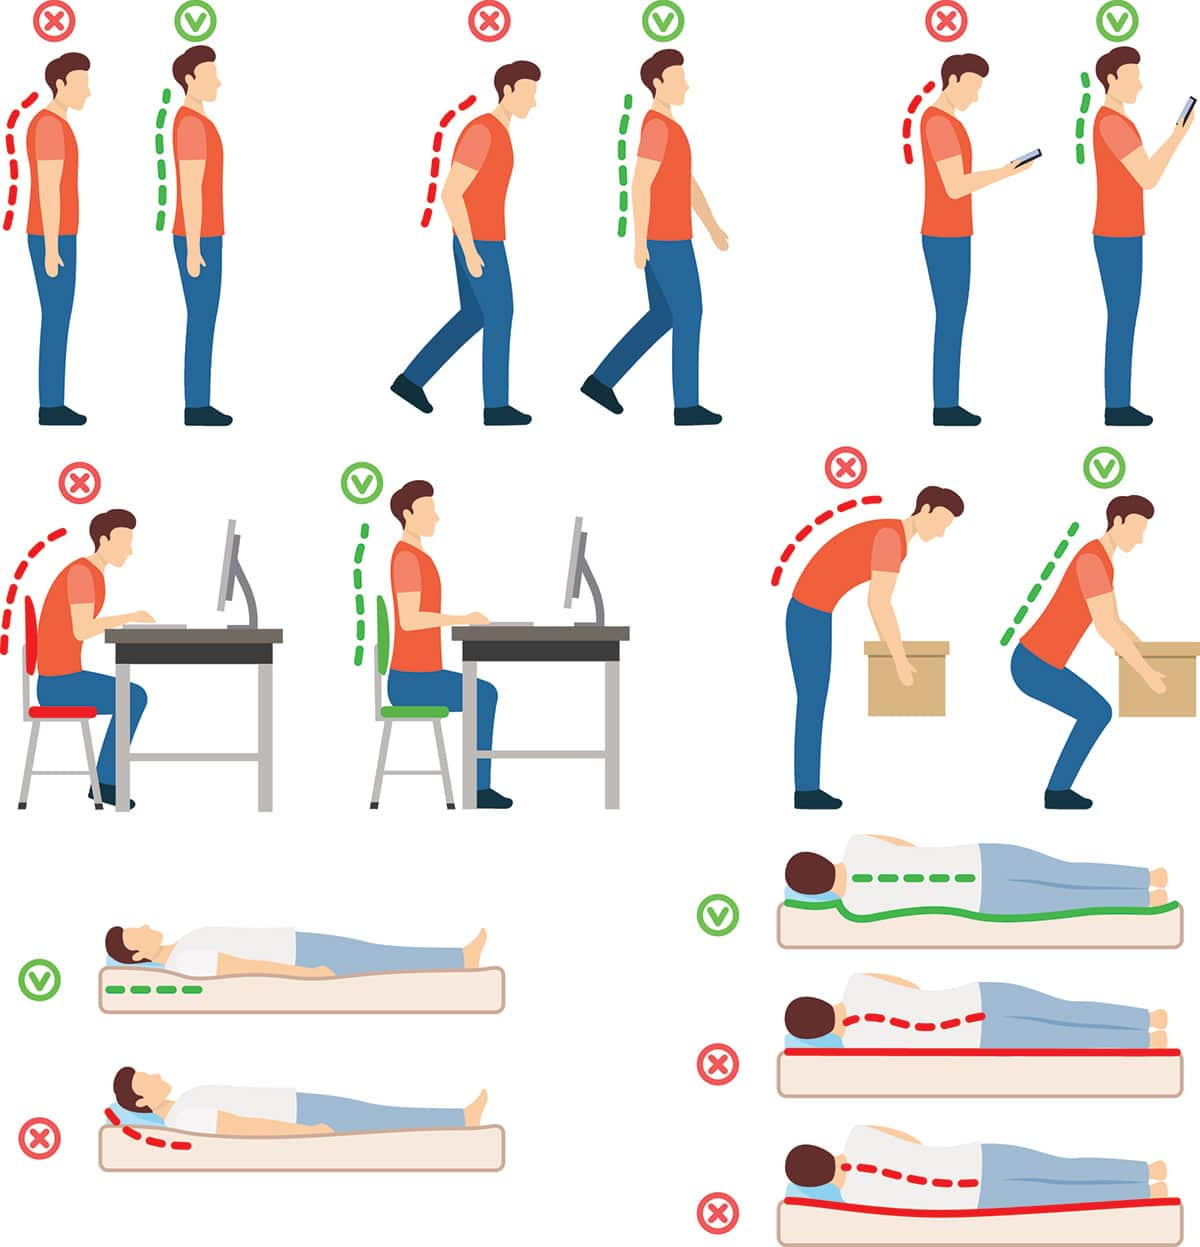 Infographic pointers to avoid back and neck pain as mentioned by Dr.G.Balamurali, best neurosurgeon in India